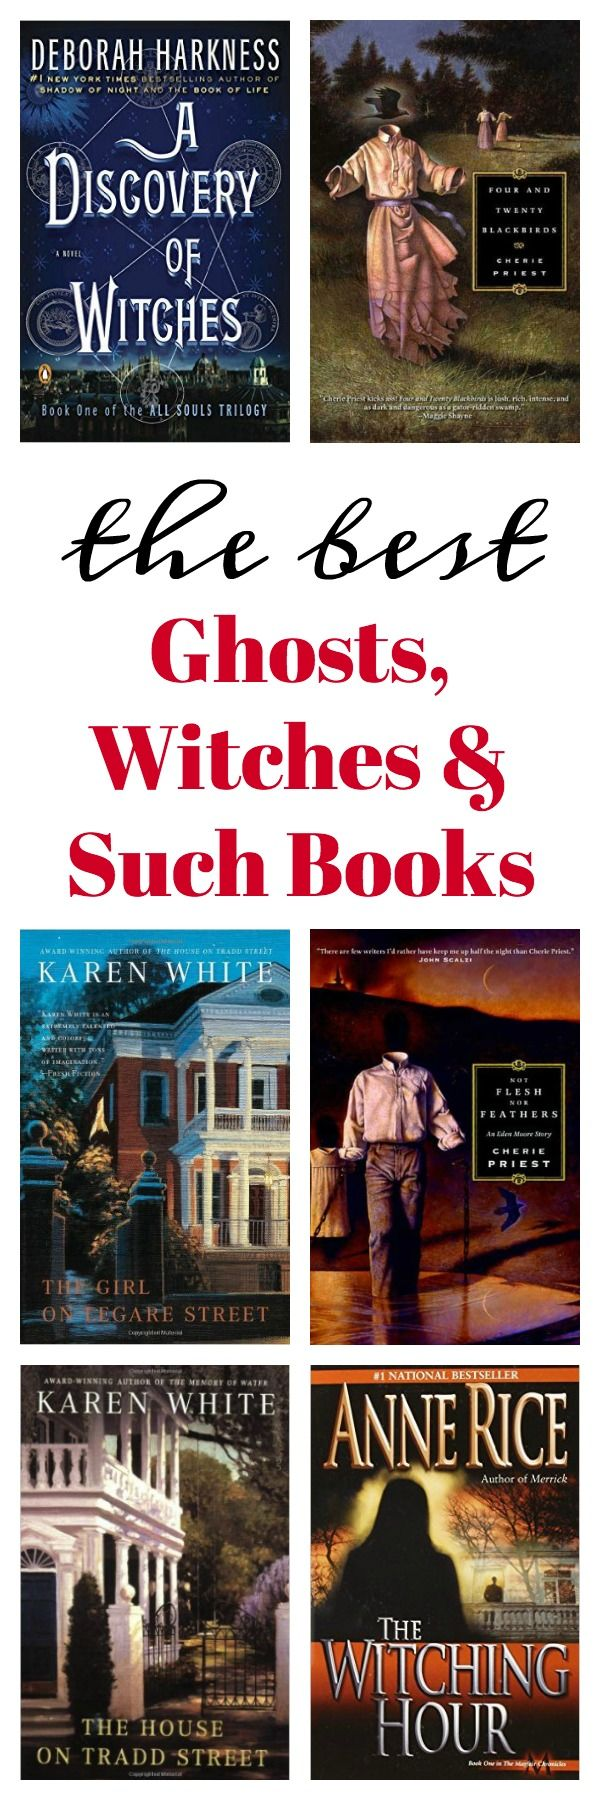 The Best Ghosts, Witches And Such Books